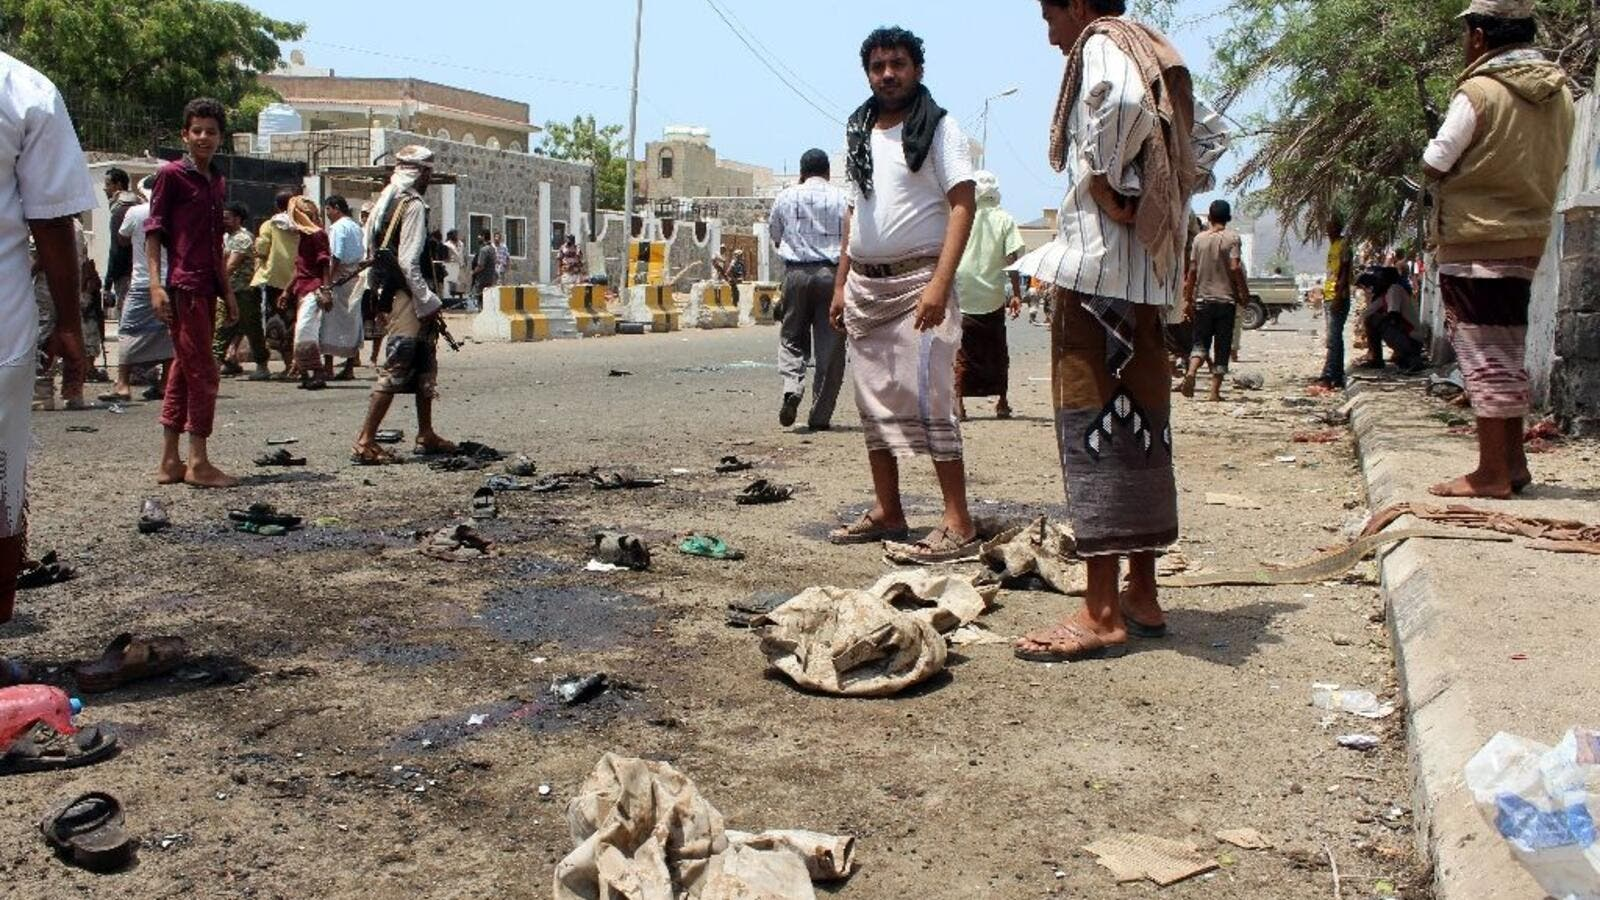 Onlookers gather at the site of a Daesh-group claimed twin bombing that targeted Yemeni forces in the southern city of Aden on May 23, 2016 (AFP/Saleh Al-Obeidi)